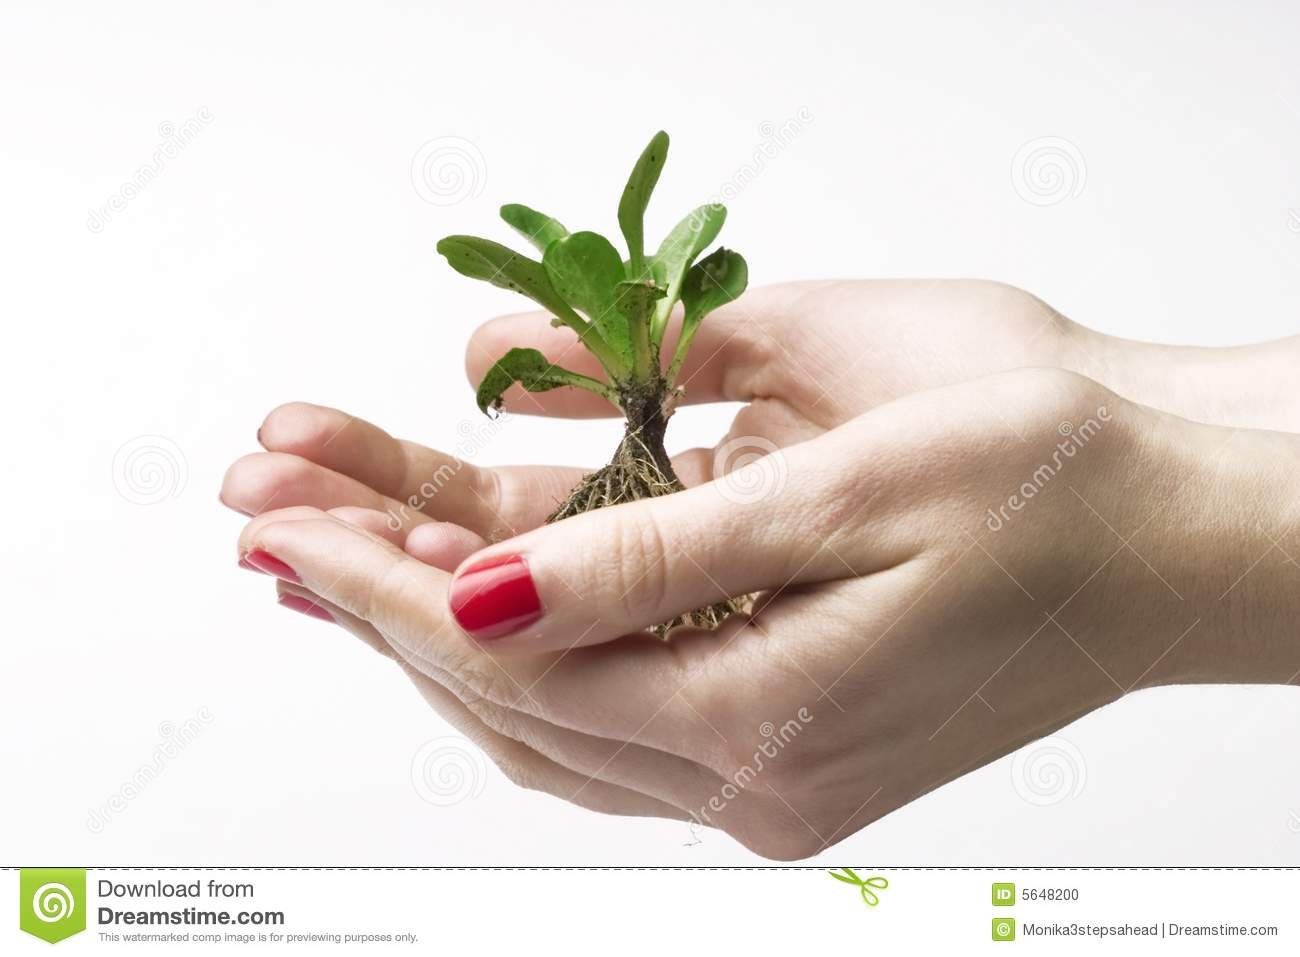 New life in hands- white background.